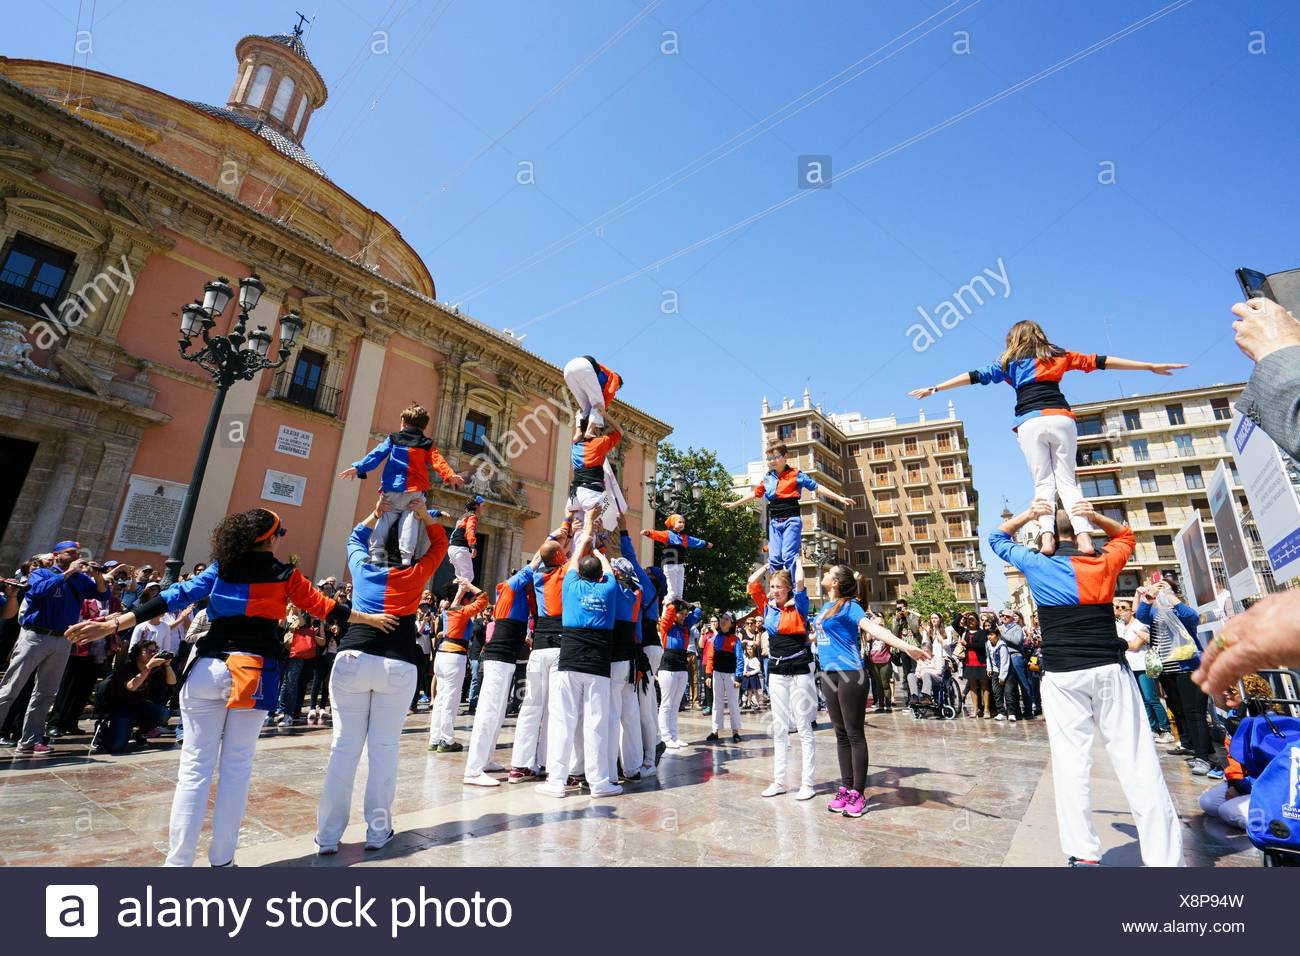 Castellers perform the castle (Castell) in the square of the Virgin of Valencia, Spain - Stock Image